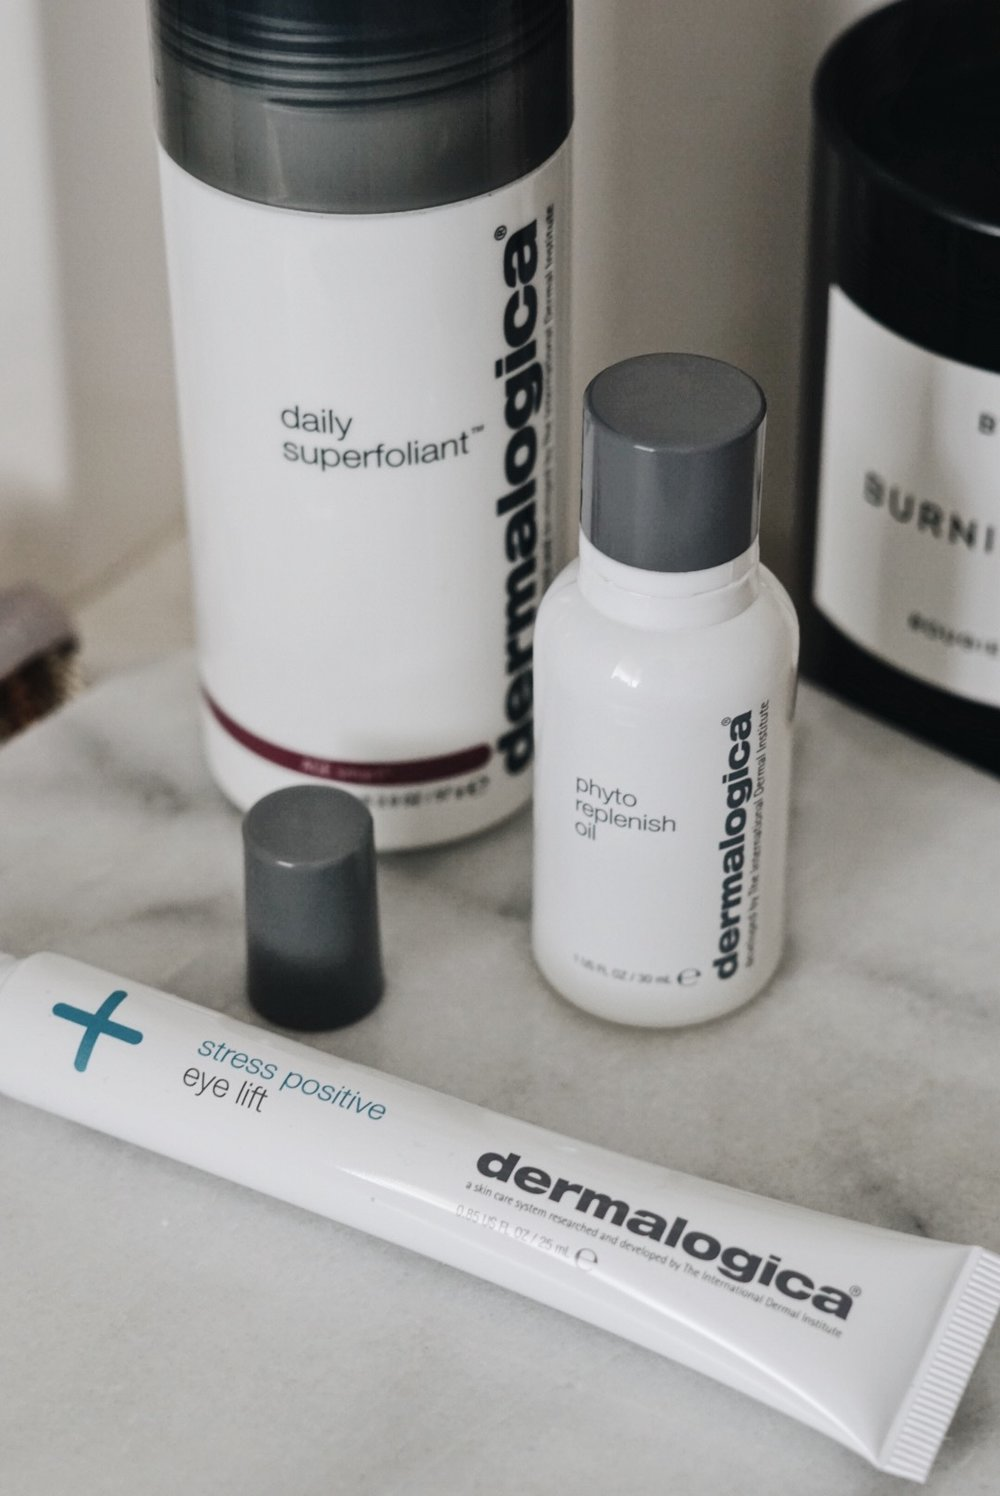 Dermalogica-Stress-Positive-Eye-Lift-Daily-Superfoliant-Phyto-Replenish-Oil-Discount-Coupon